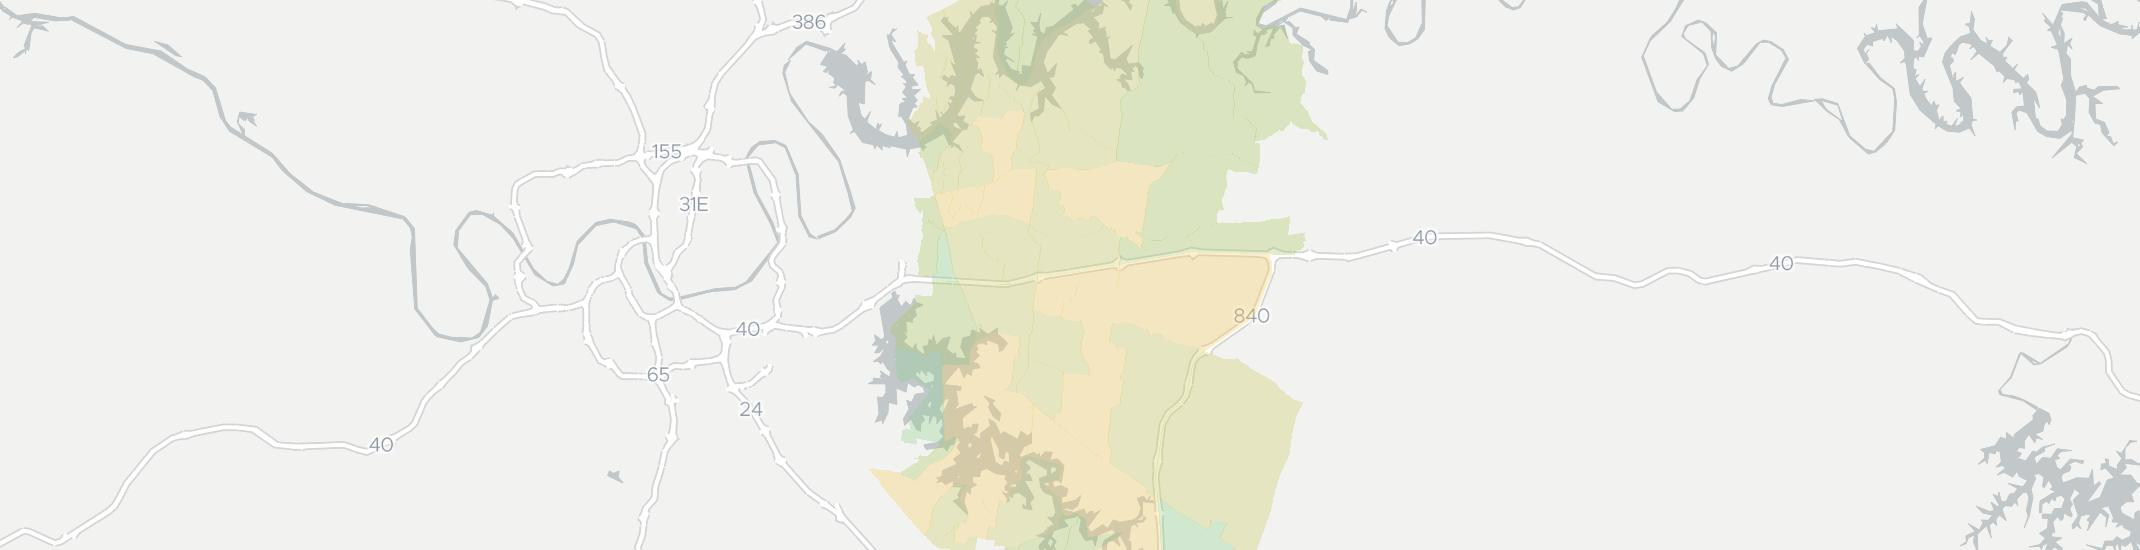 Mount Juliet Internet Competition Map. Click for interactive map.